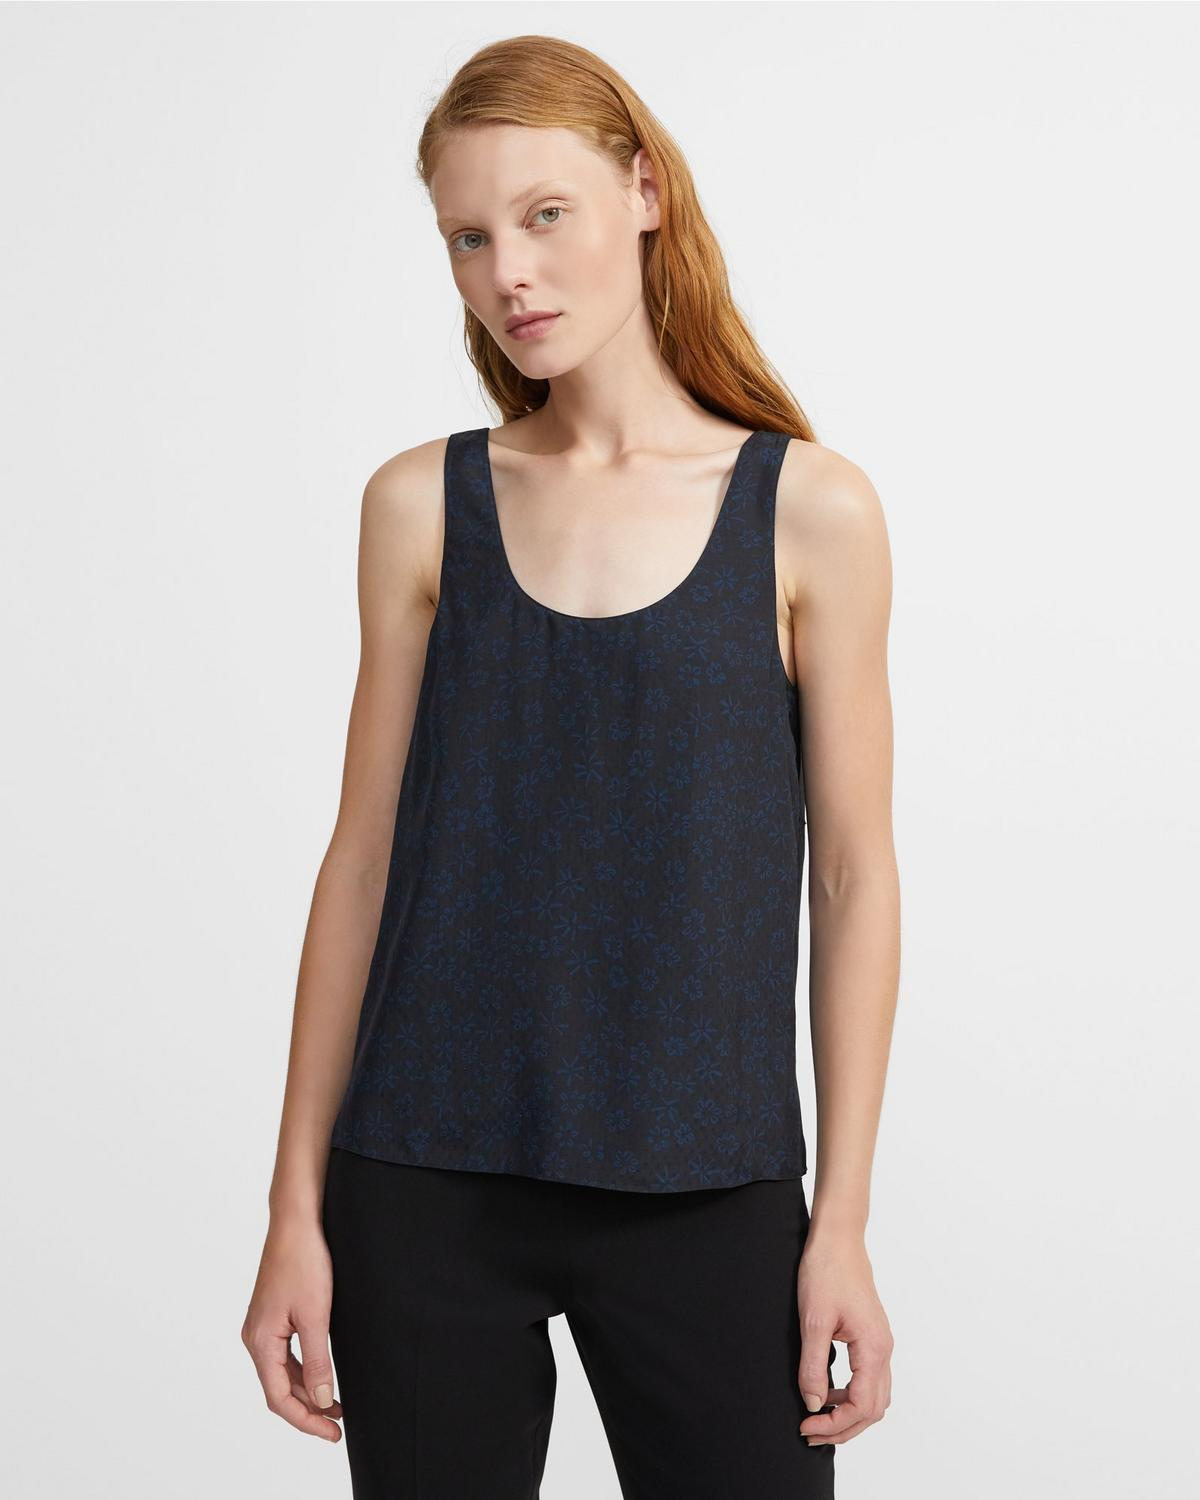 Flower-Print Scoop Tank